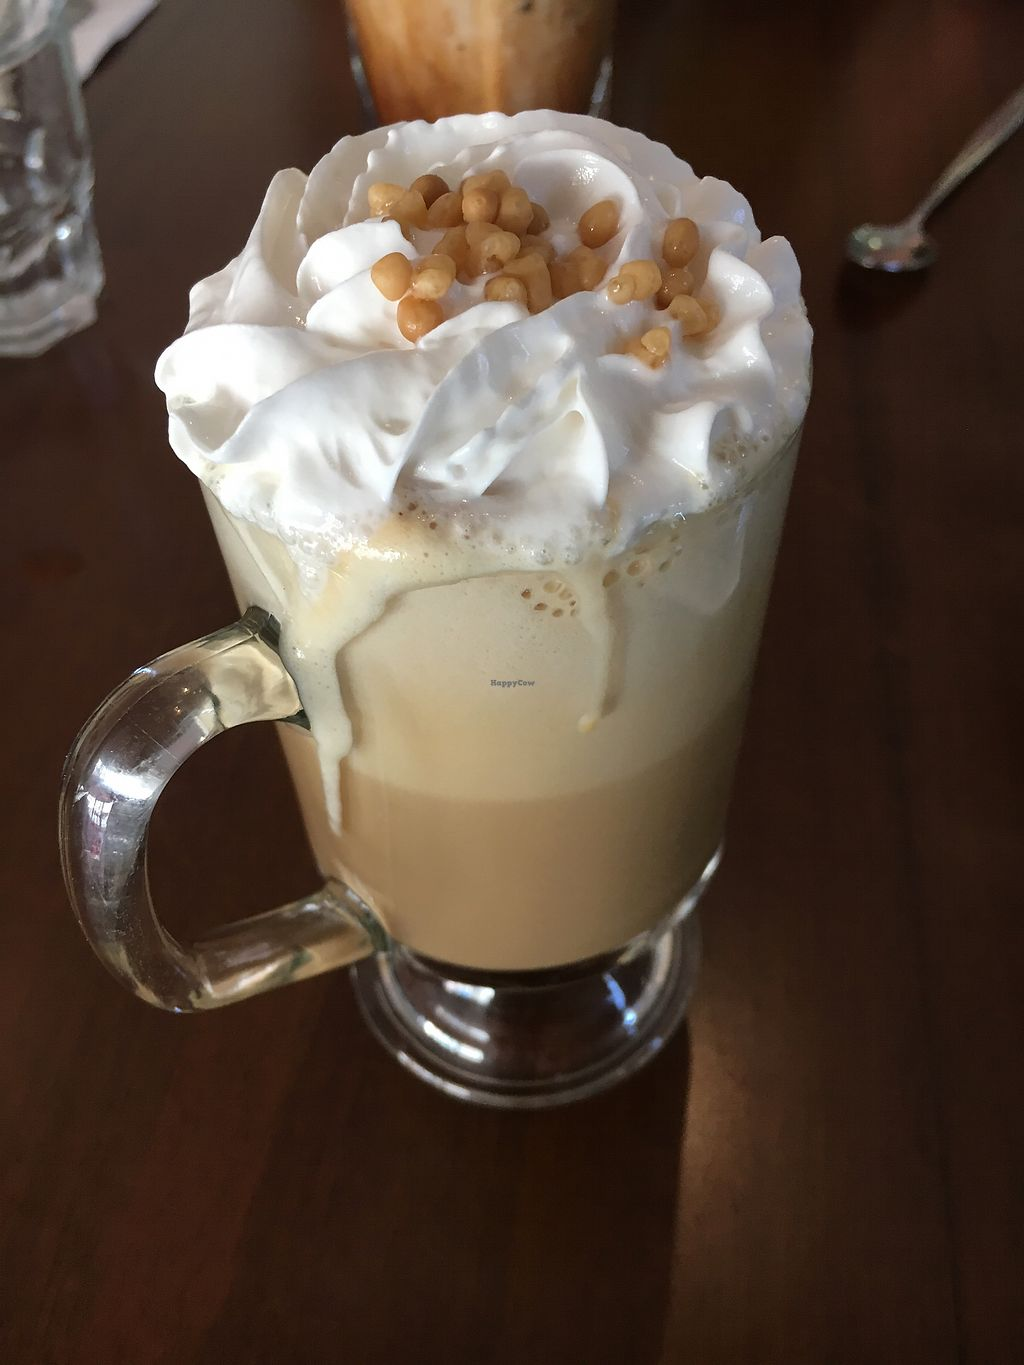 """Photo of The Green Edge Store and Cafe  by <a href=""""/members/profile/2lentilforyou"""">2lentilforyou</a> <br/>I think salted caramel  <br/> August 24, 2017  - <a href='/contact/abuse/image/19791/296550'>Report</a>"""